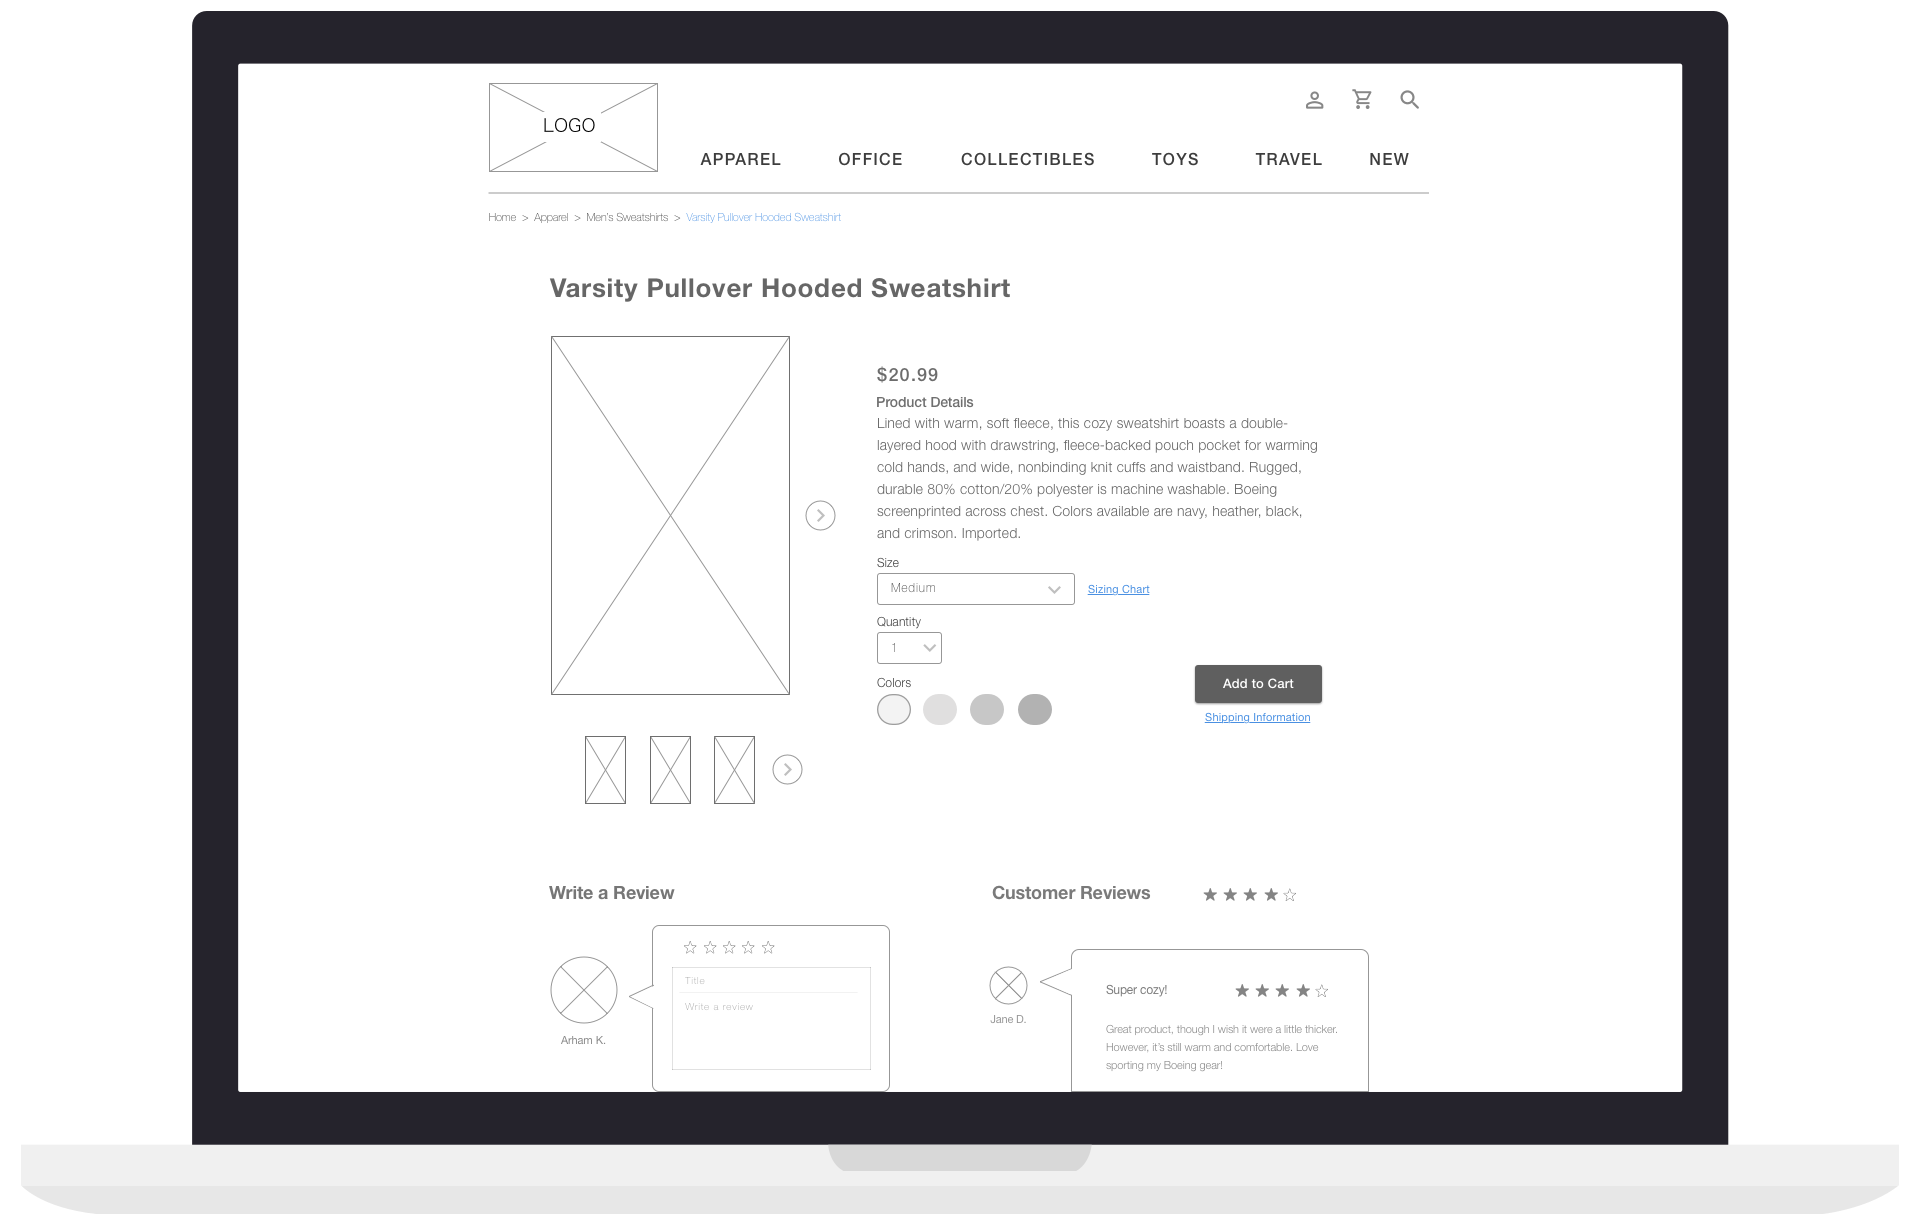 A product description is important to my users, so it's displayed here alongside a large photo, with multiple pictures to view—another desire from the users. With reviews at the bottom, our users will find all the info they need about a product on this page.